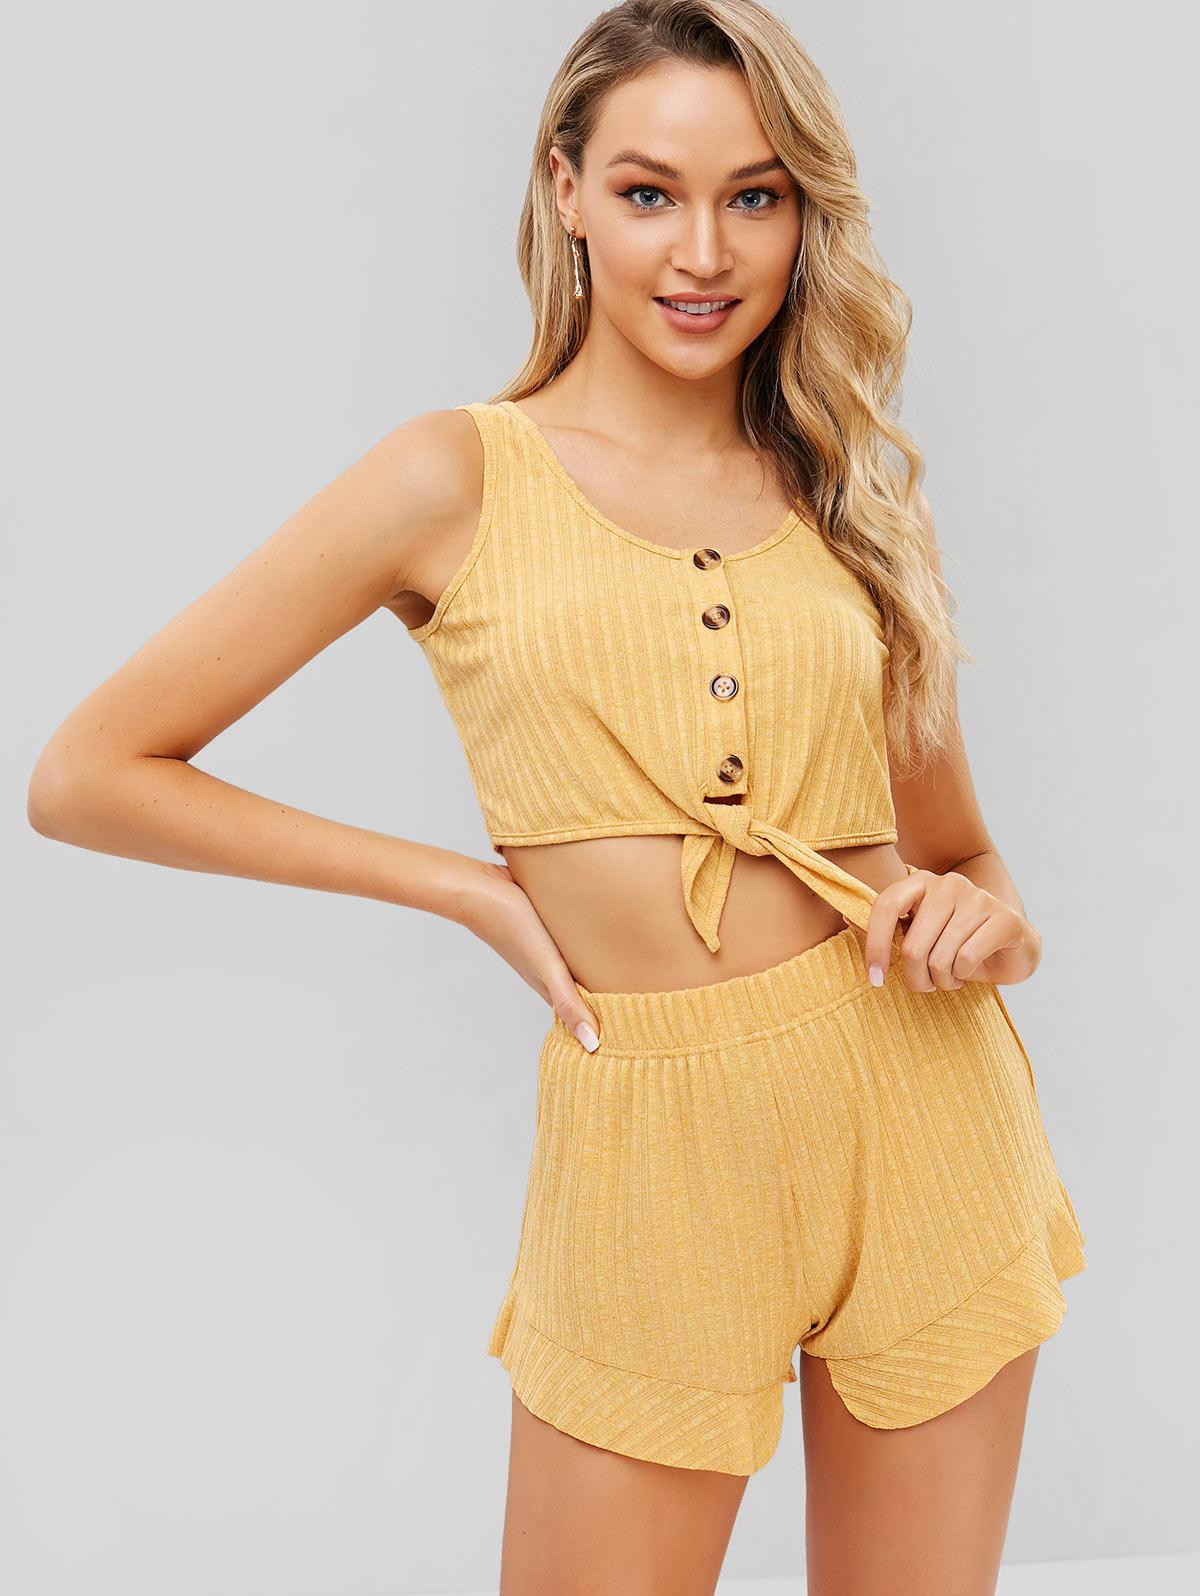 ZAFUL Tie Front Button Up Top And Shorts Set, Goldenrod